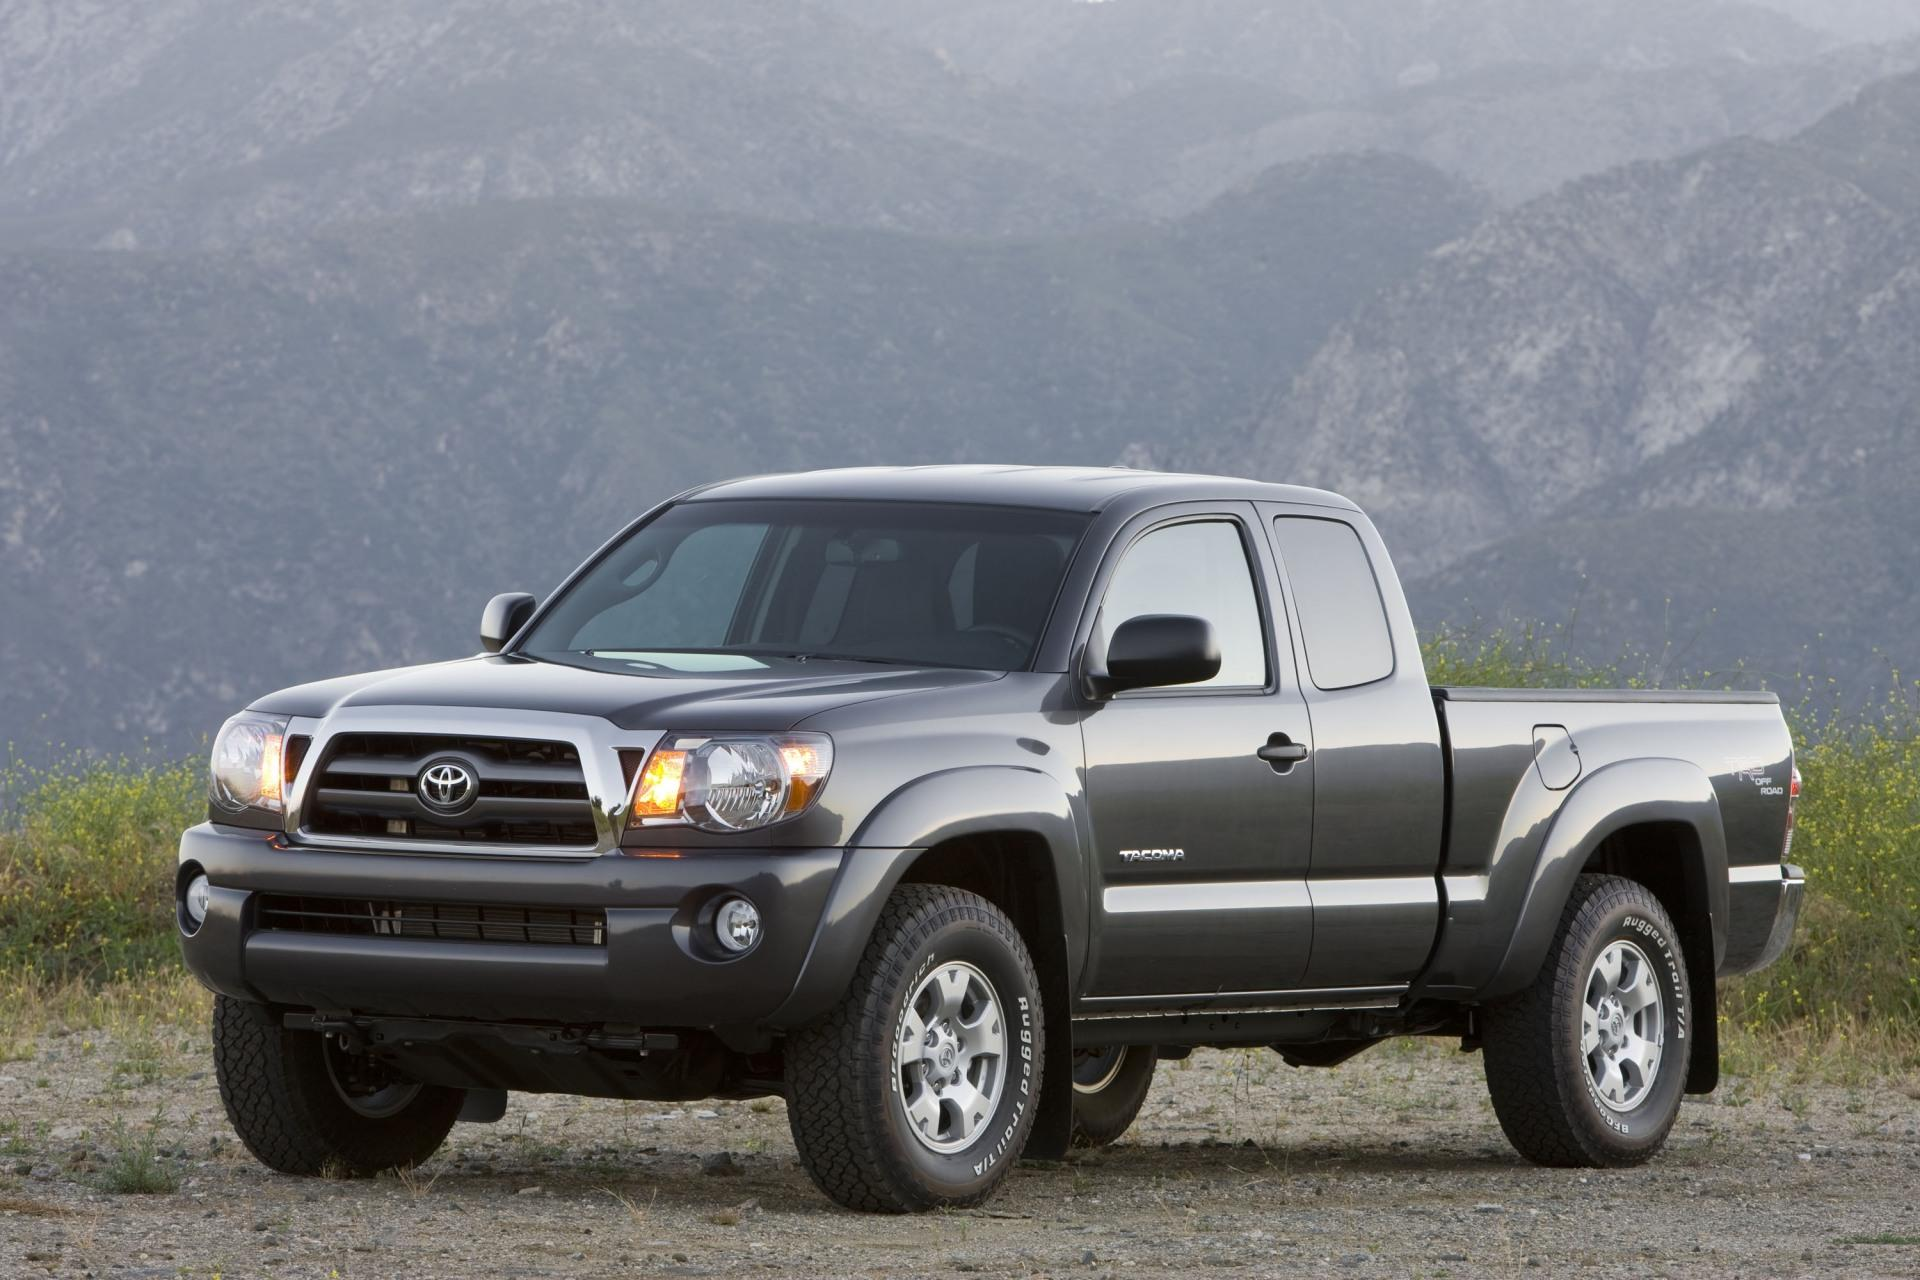 Toyota Tacoma Wallpaper 6696 Hd Wallpapers in Cars   Imagescicom 1920x1280